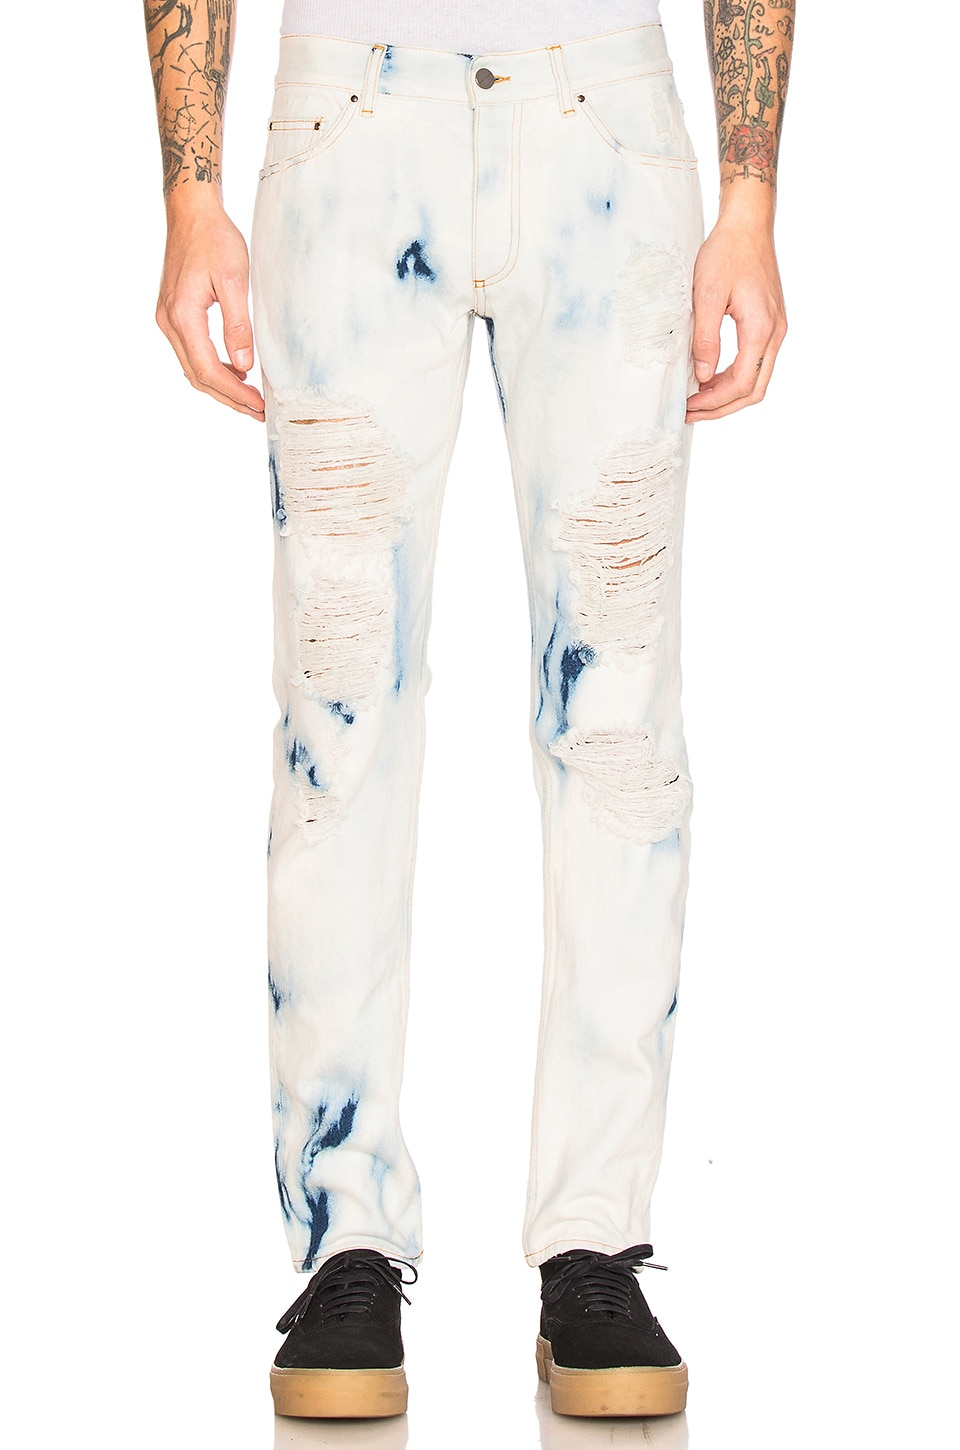 Tie Dye Jean by Palm Angels